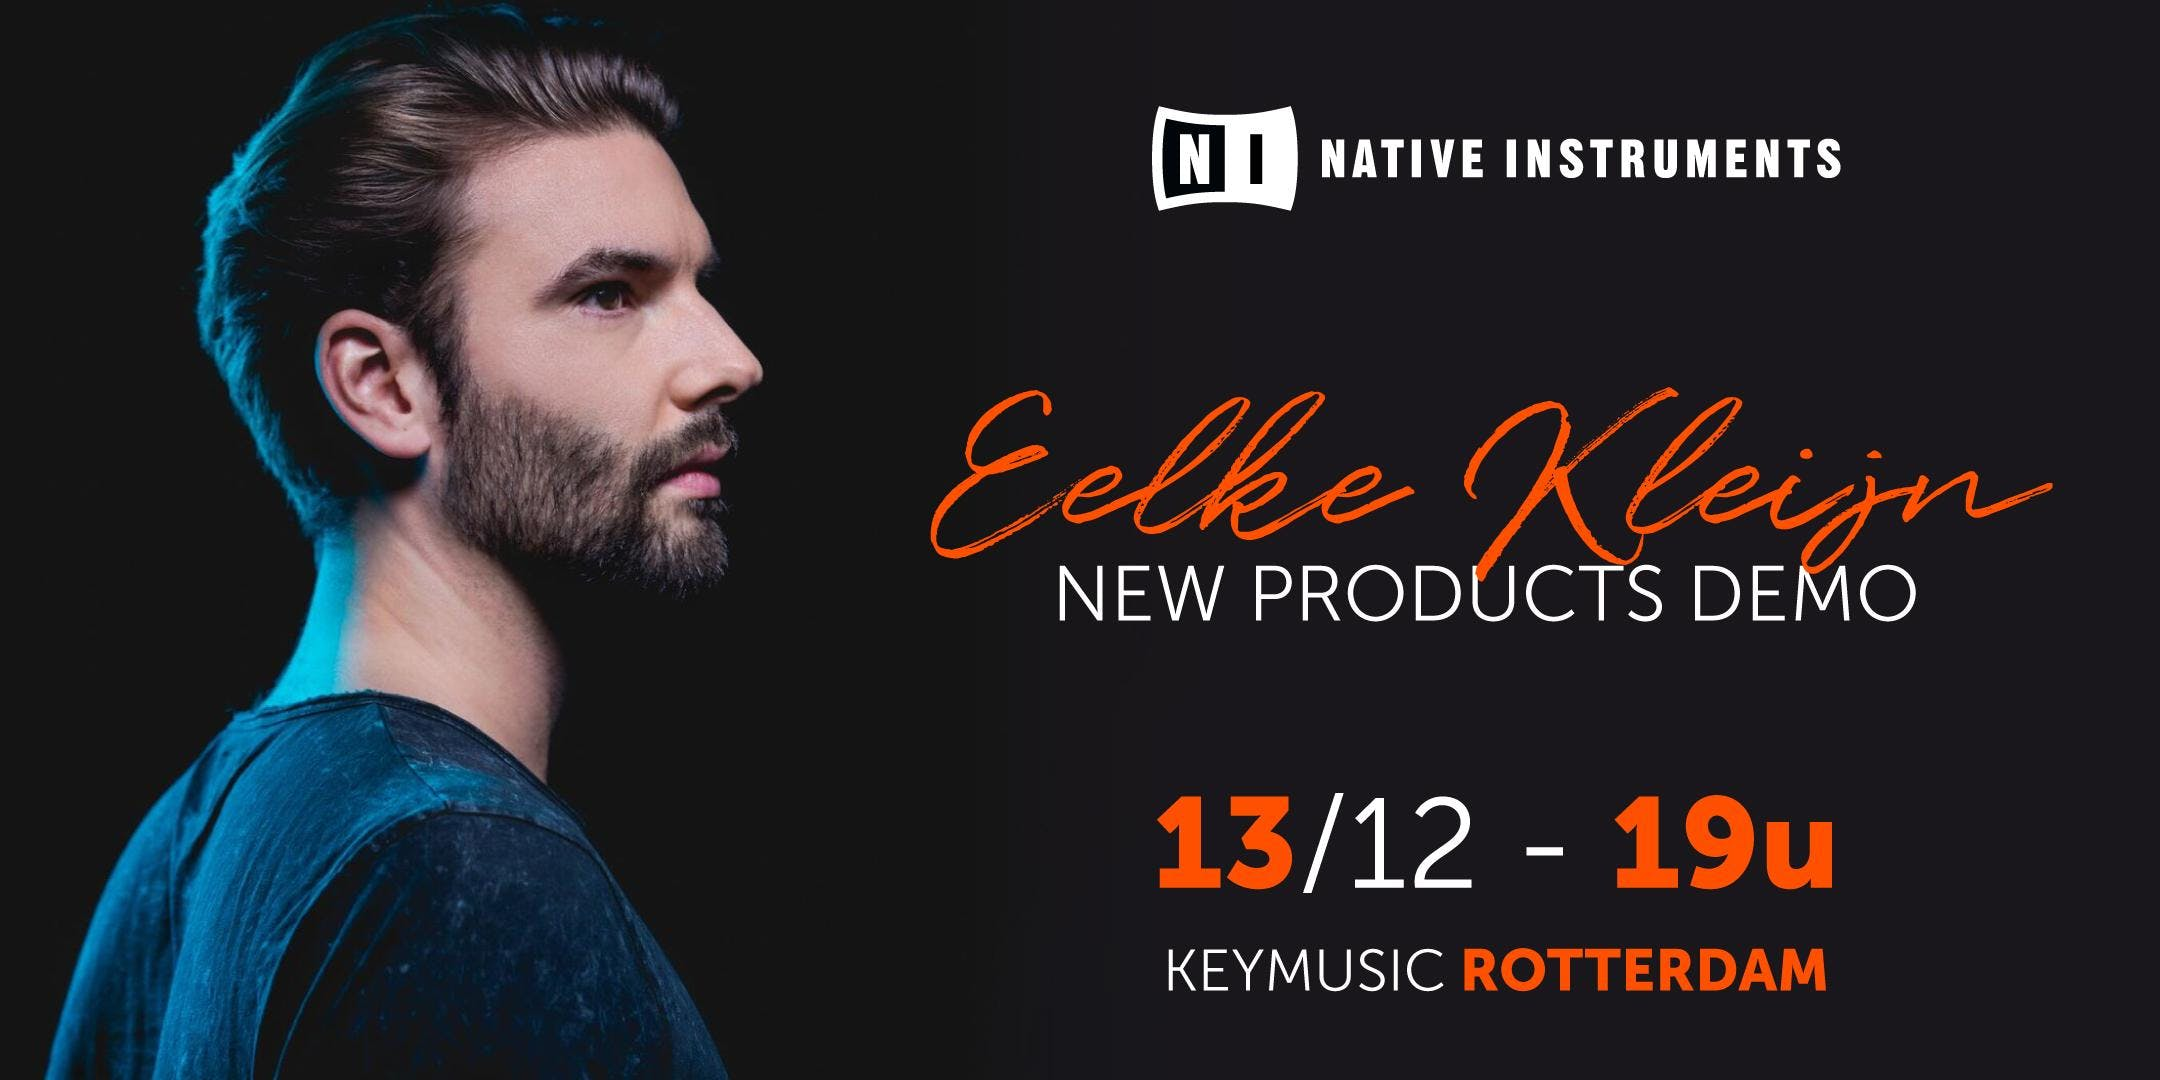 Eelke Kleijn Native Instruments demo KEYMUSIC